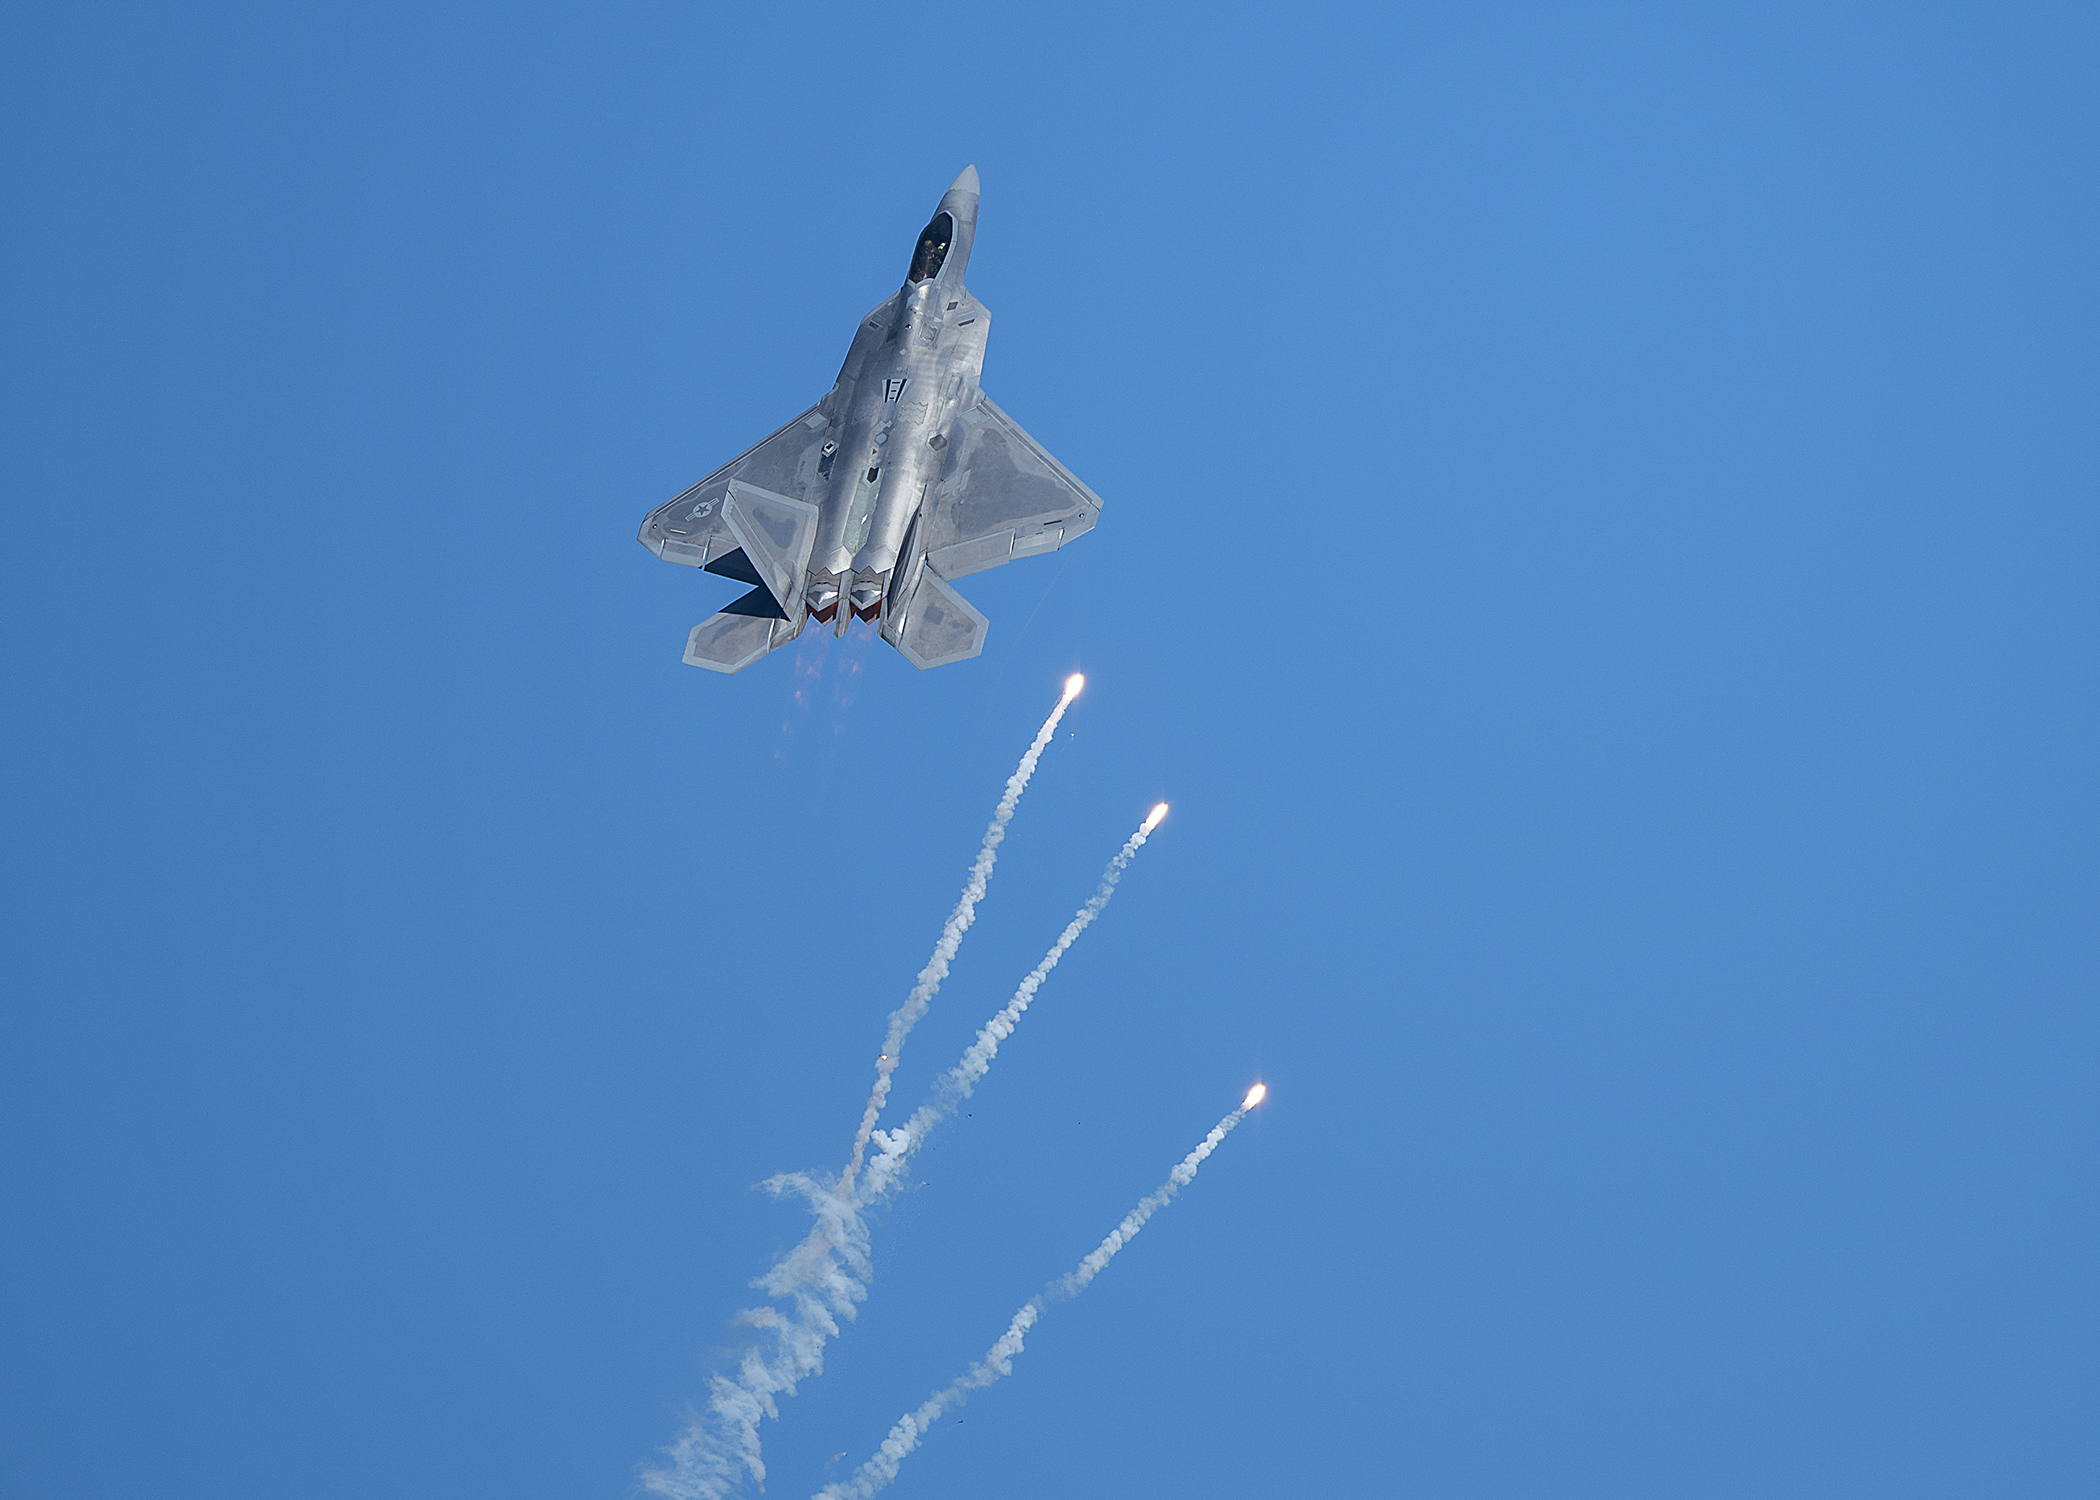 A 433rd Weapons Squadron F-22 Raptor fighter jet pops flares during the Aviation Nation 2019 air show at Nellis Air Force Base, Nev., Nov. 16, 2019. (Airman 1st Class Bryan Guthrie/Air Force)